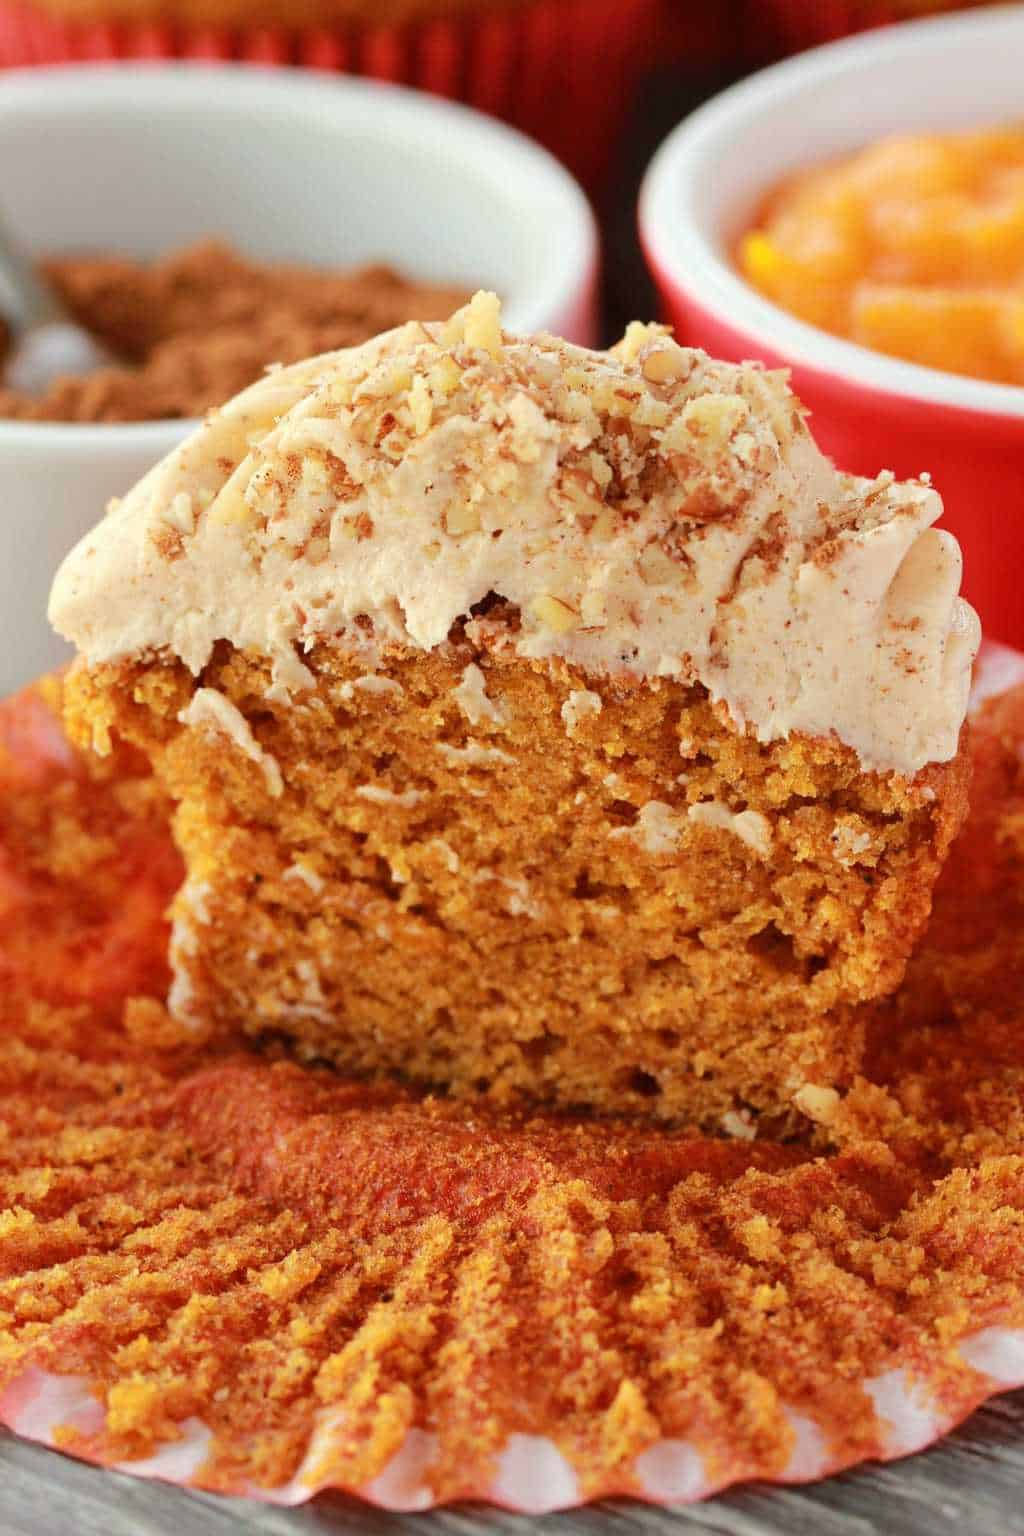 Vegan pumpkin cupcake topped with pumpkin spice frosting, cut in half to show the center.